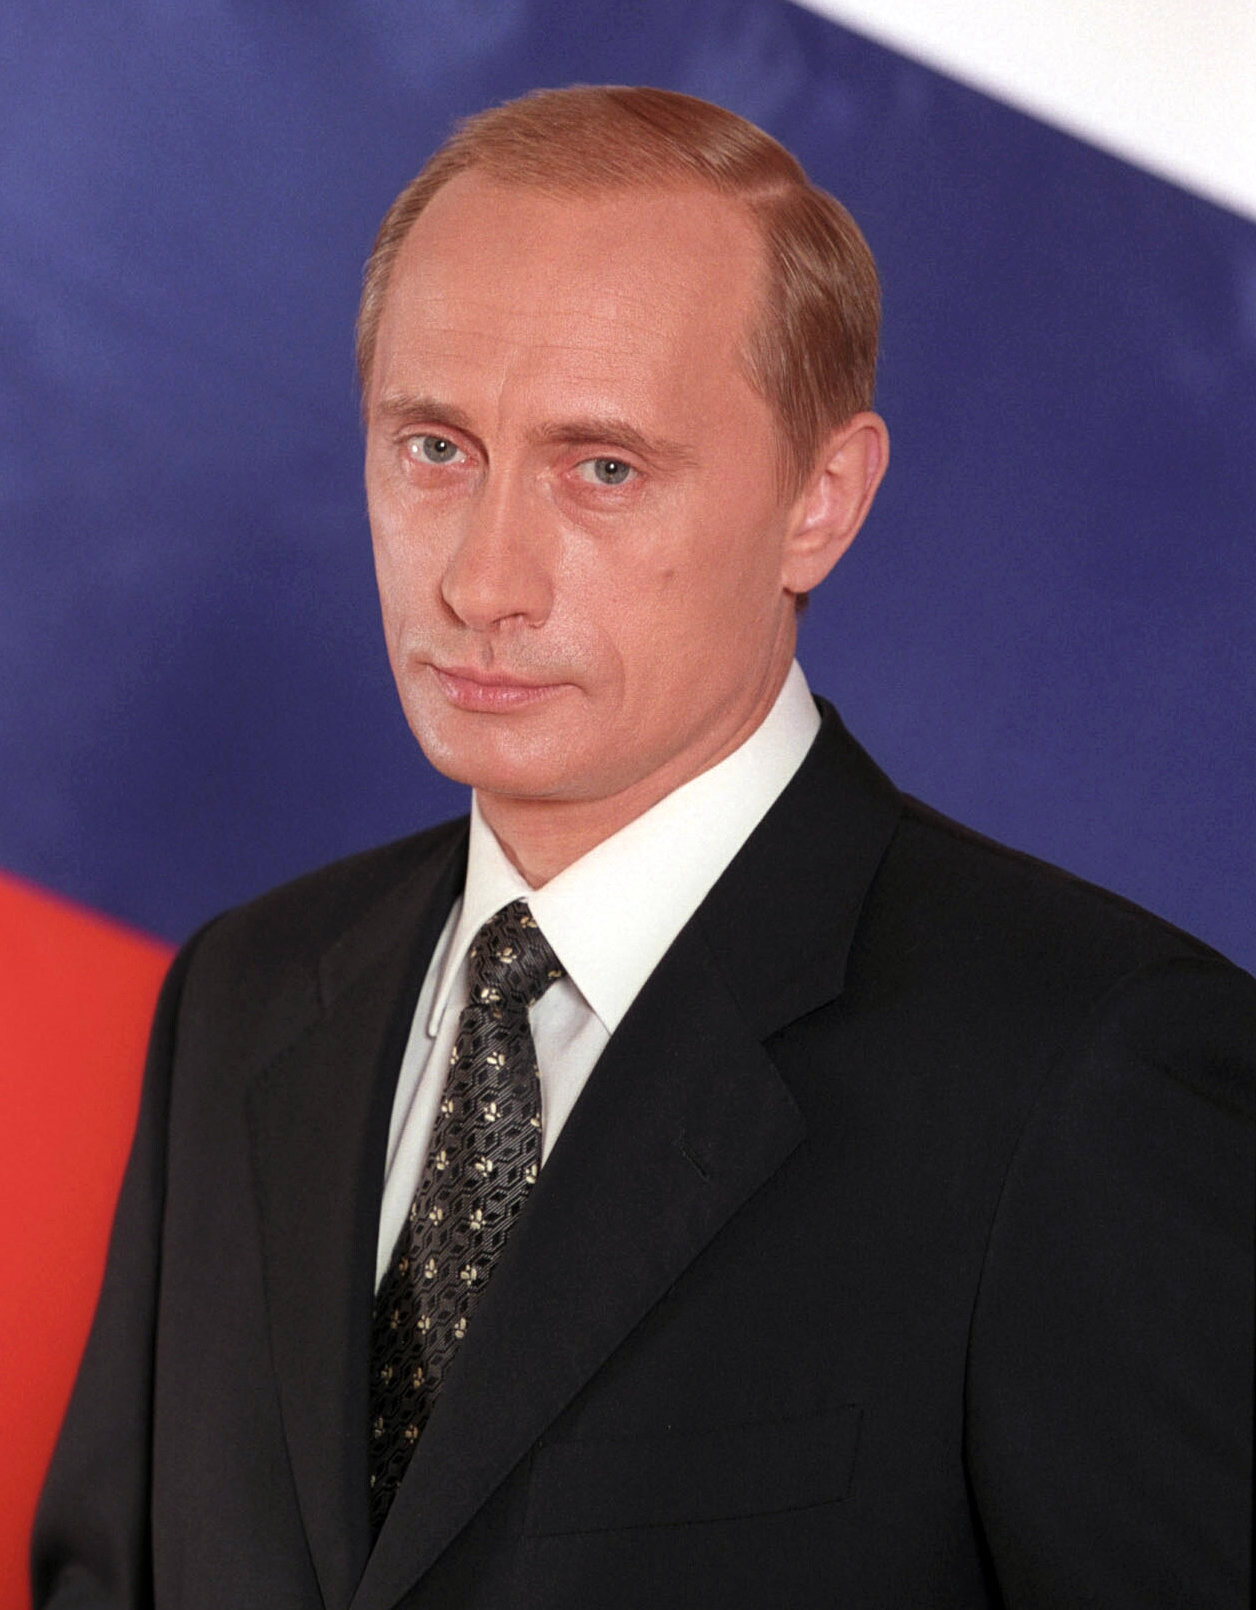 https://i0.wp.com/upload.wikimedia.org/wikipedia/commons/a/a9/Vladimir_Putin_official_portrait.jpg